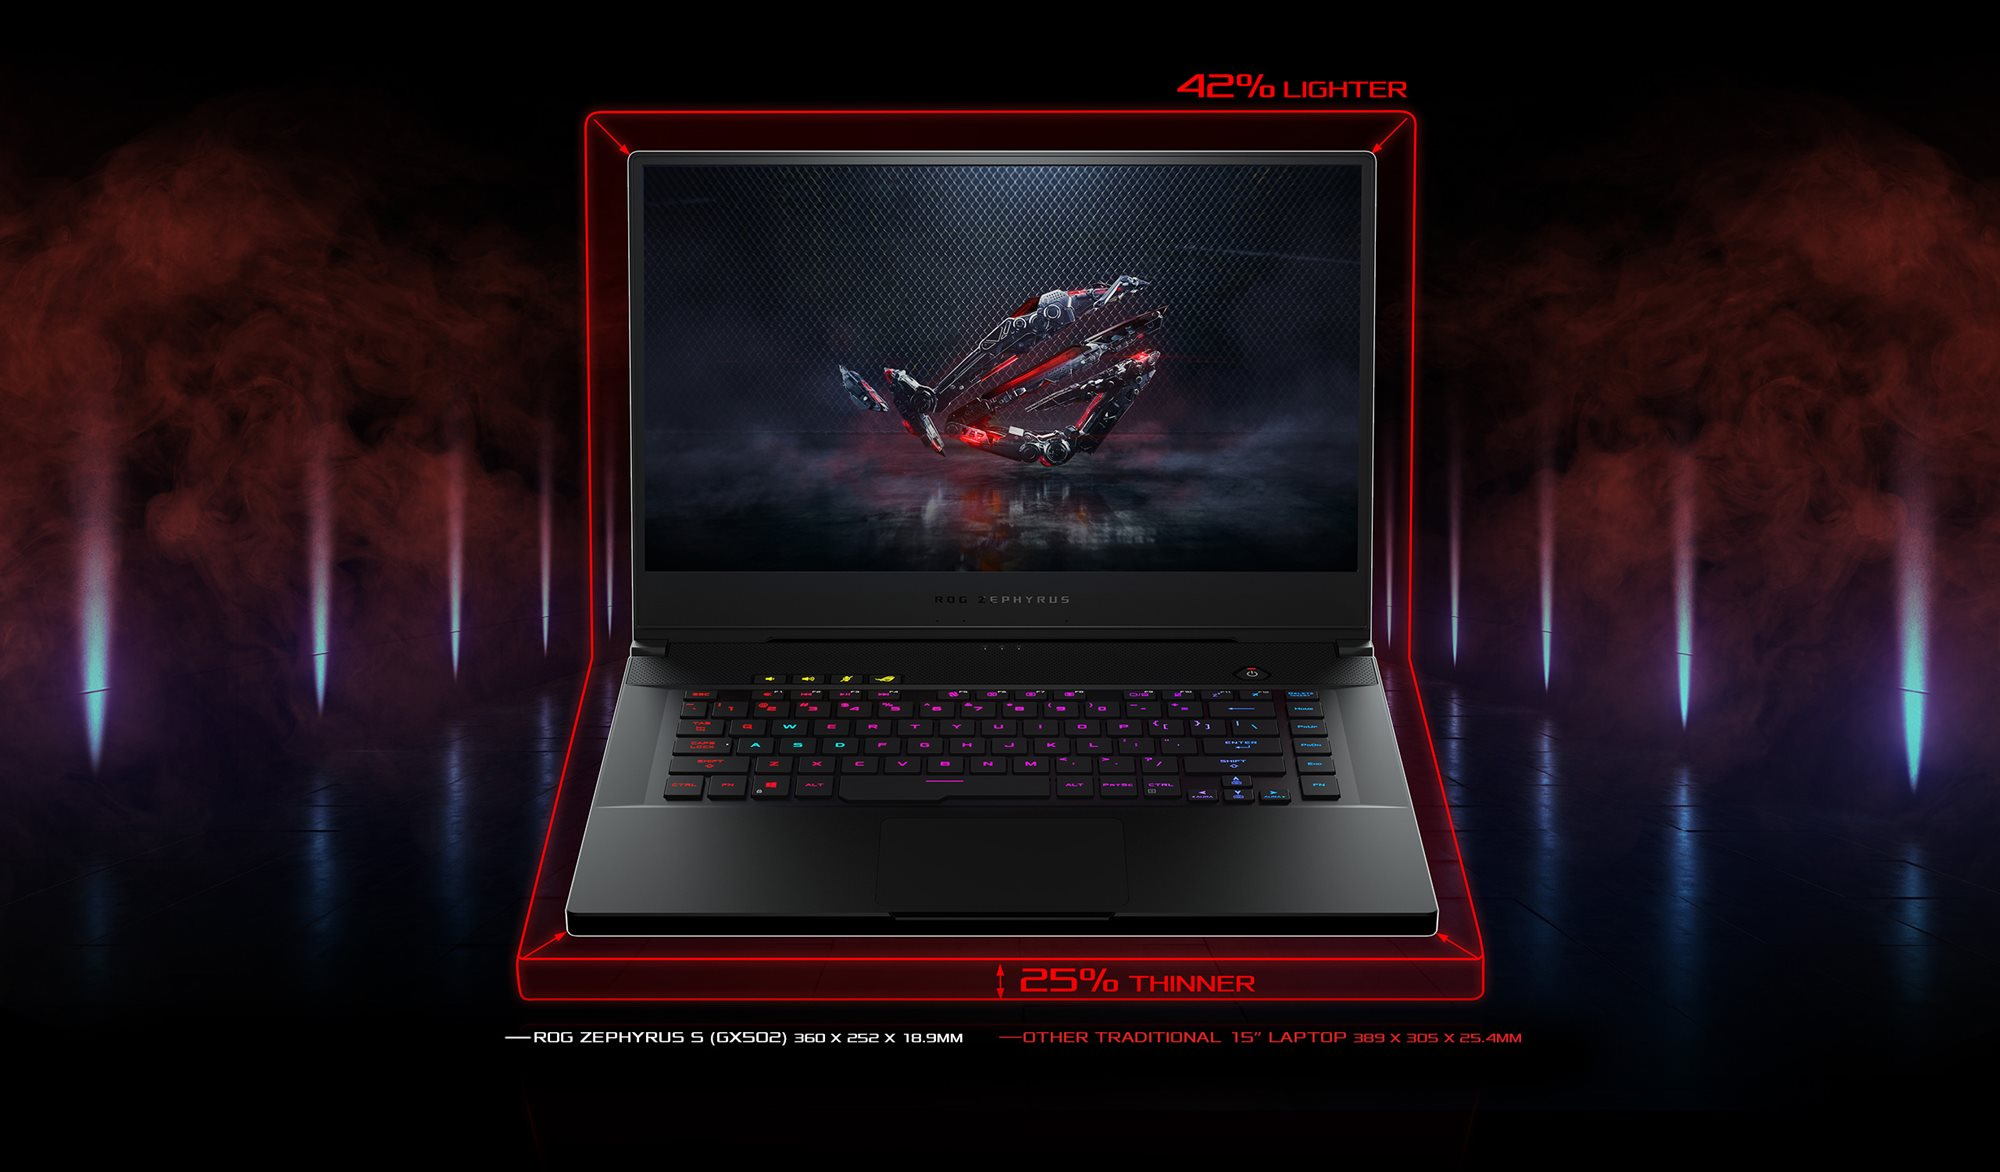 """ROG Zephyrus S Thin and Portable (2019) Gaming laptop, 15 6"""" 240Hz G-SYNC  FHD IPS, GeForce RTX 2070, i7-9750H, 16GB DDR4 RAM, 1TB PCIe Hyper Drive"""